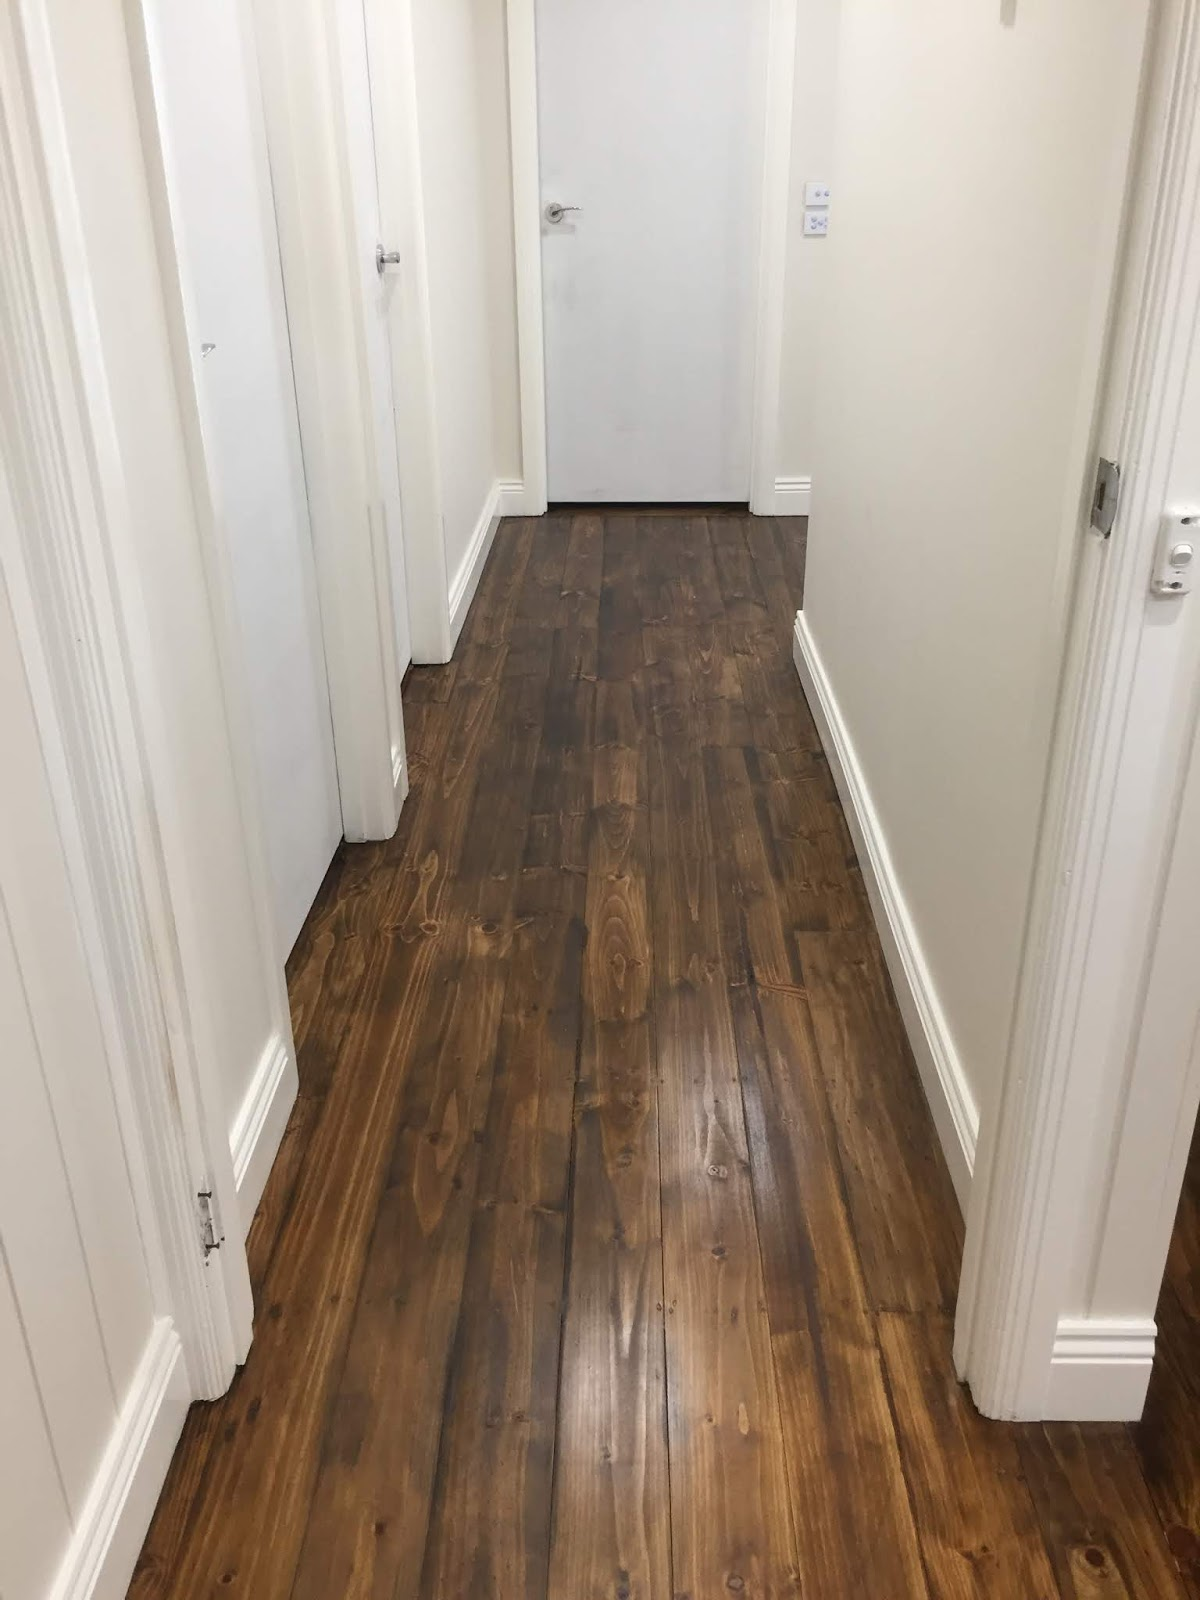 Radiata Pine stained with brown Japan colour